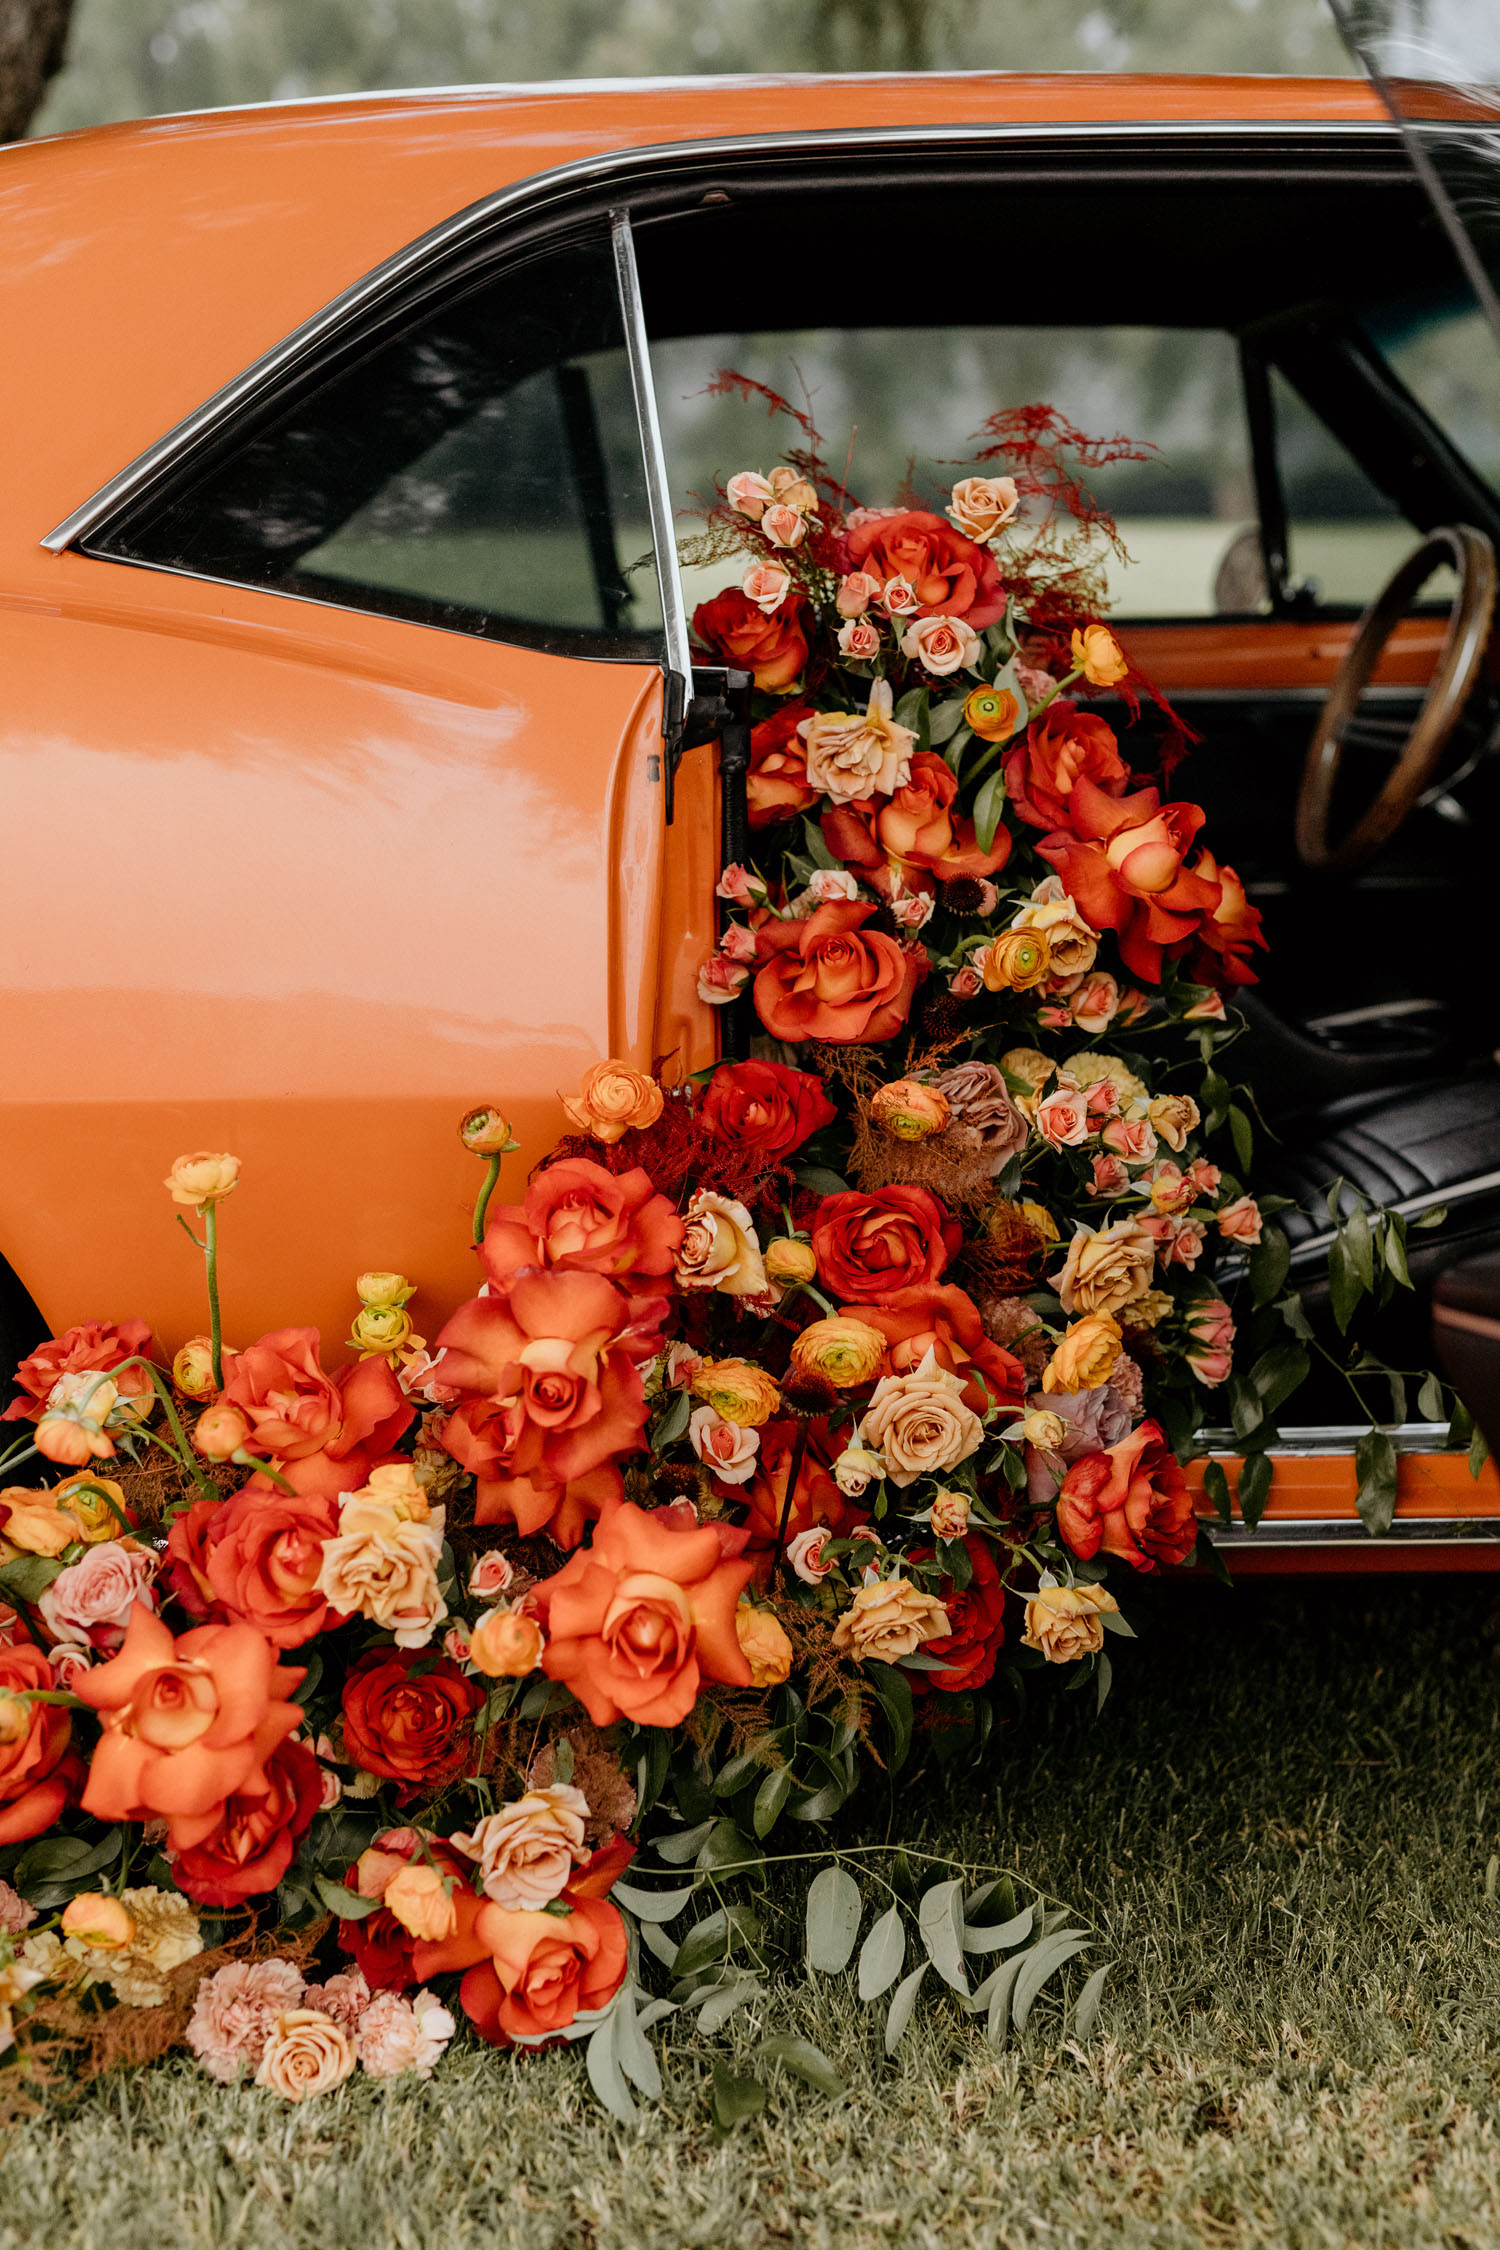 Vintage car with flowers